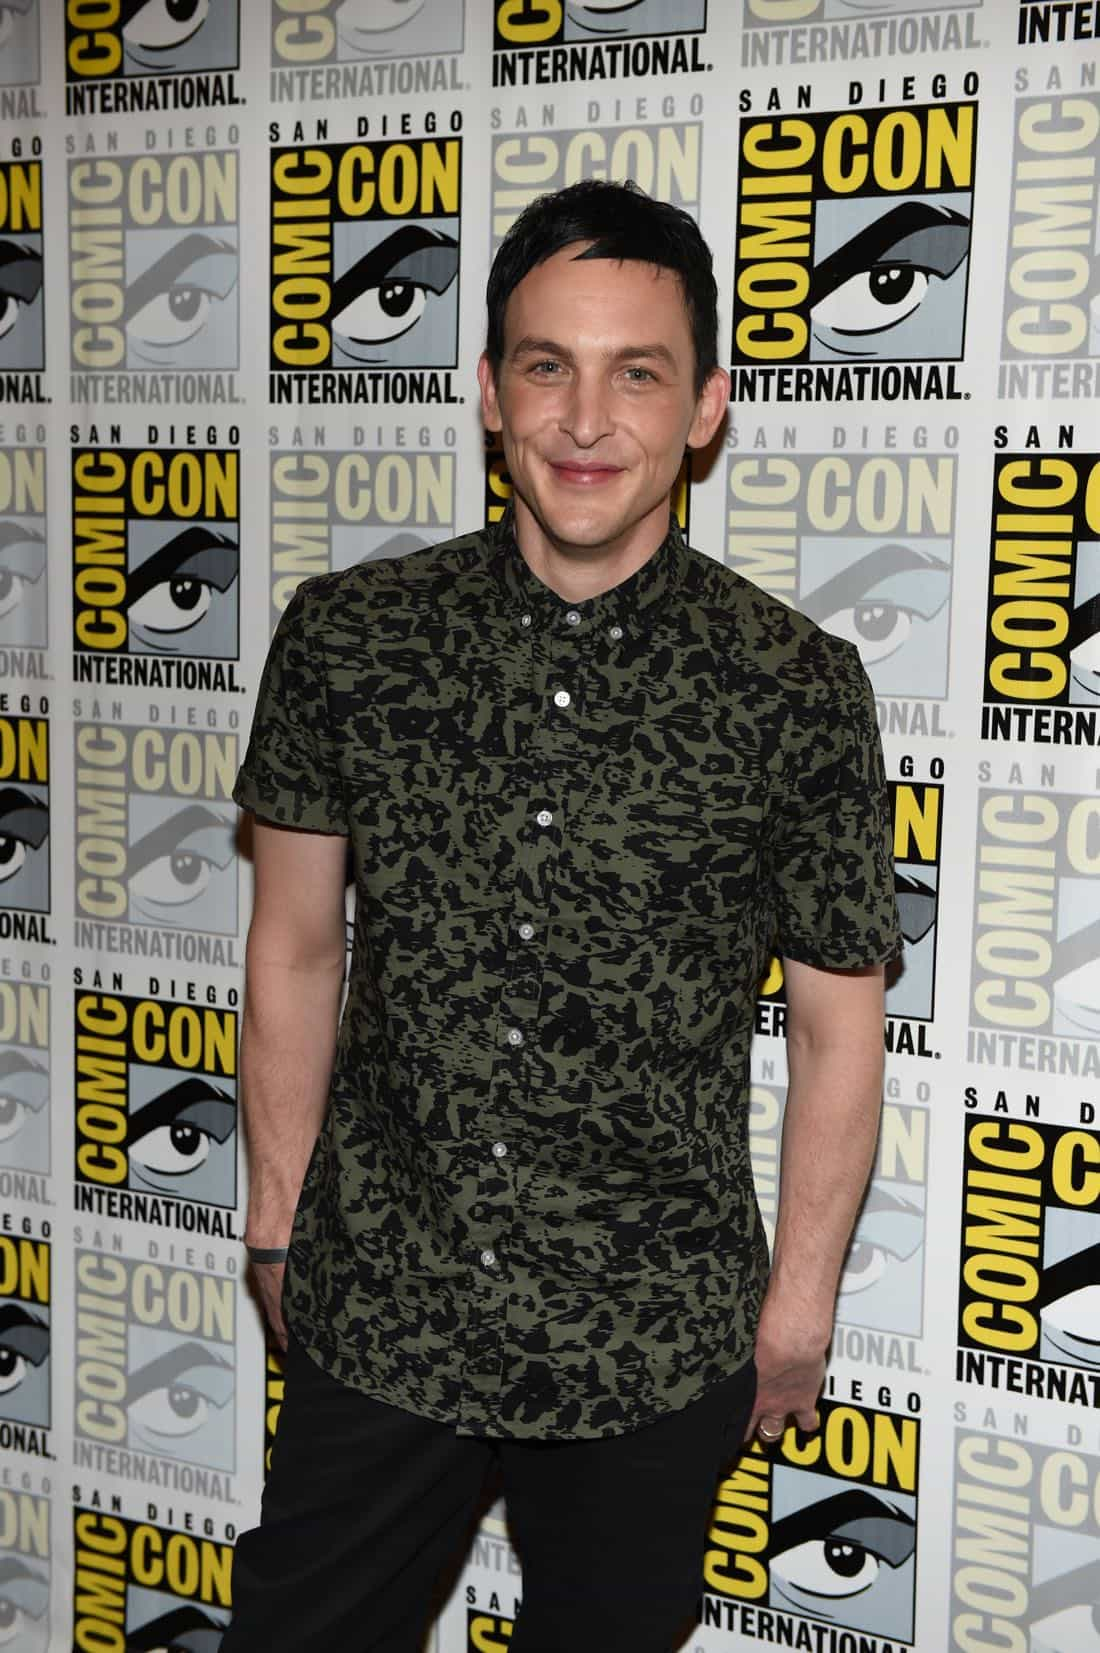 FOX FANFARE AT SAN DIEGO COMIC-CON © 2016: GOTHAM cast member Robin Lord Taylor during GOTHAM press room on Saturday, July 23 at the FOX FANFARE AT SAN DIEGO COMIC-CON © 2016. CR: Scott Kirkland/FOX © 2016 FOX BROADCASTING